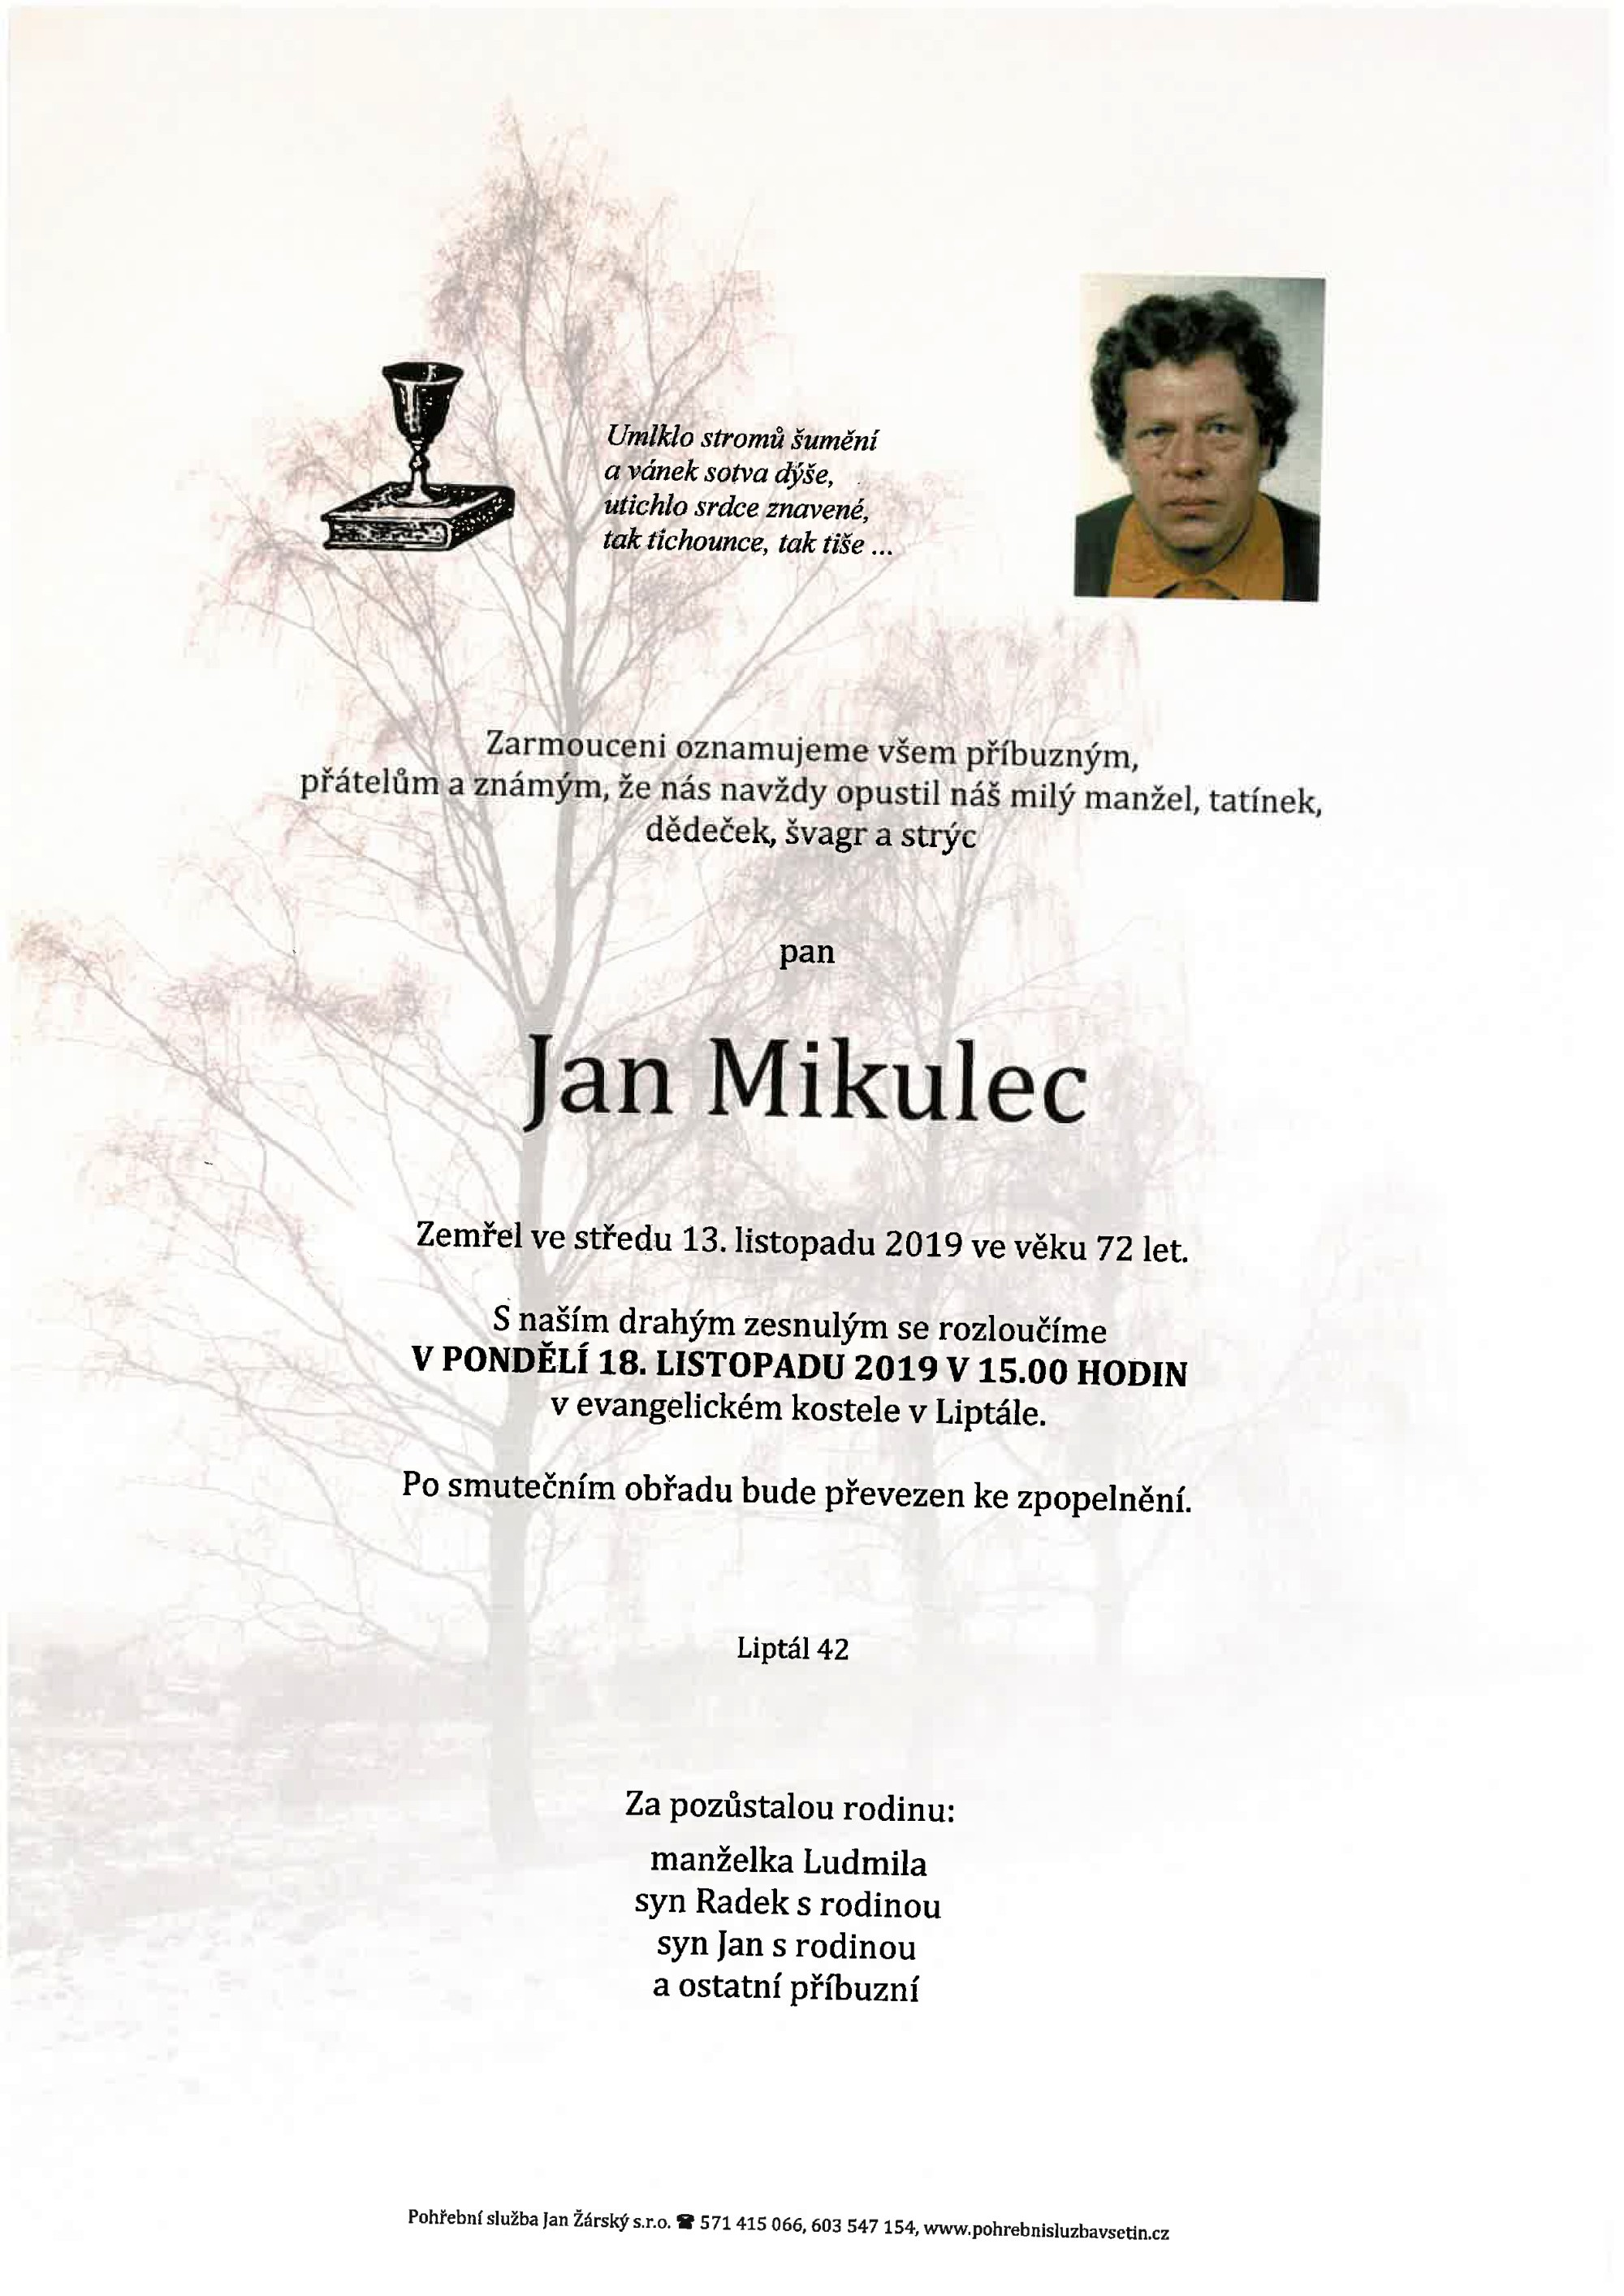 Jan Mikulec